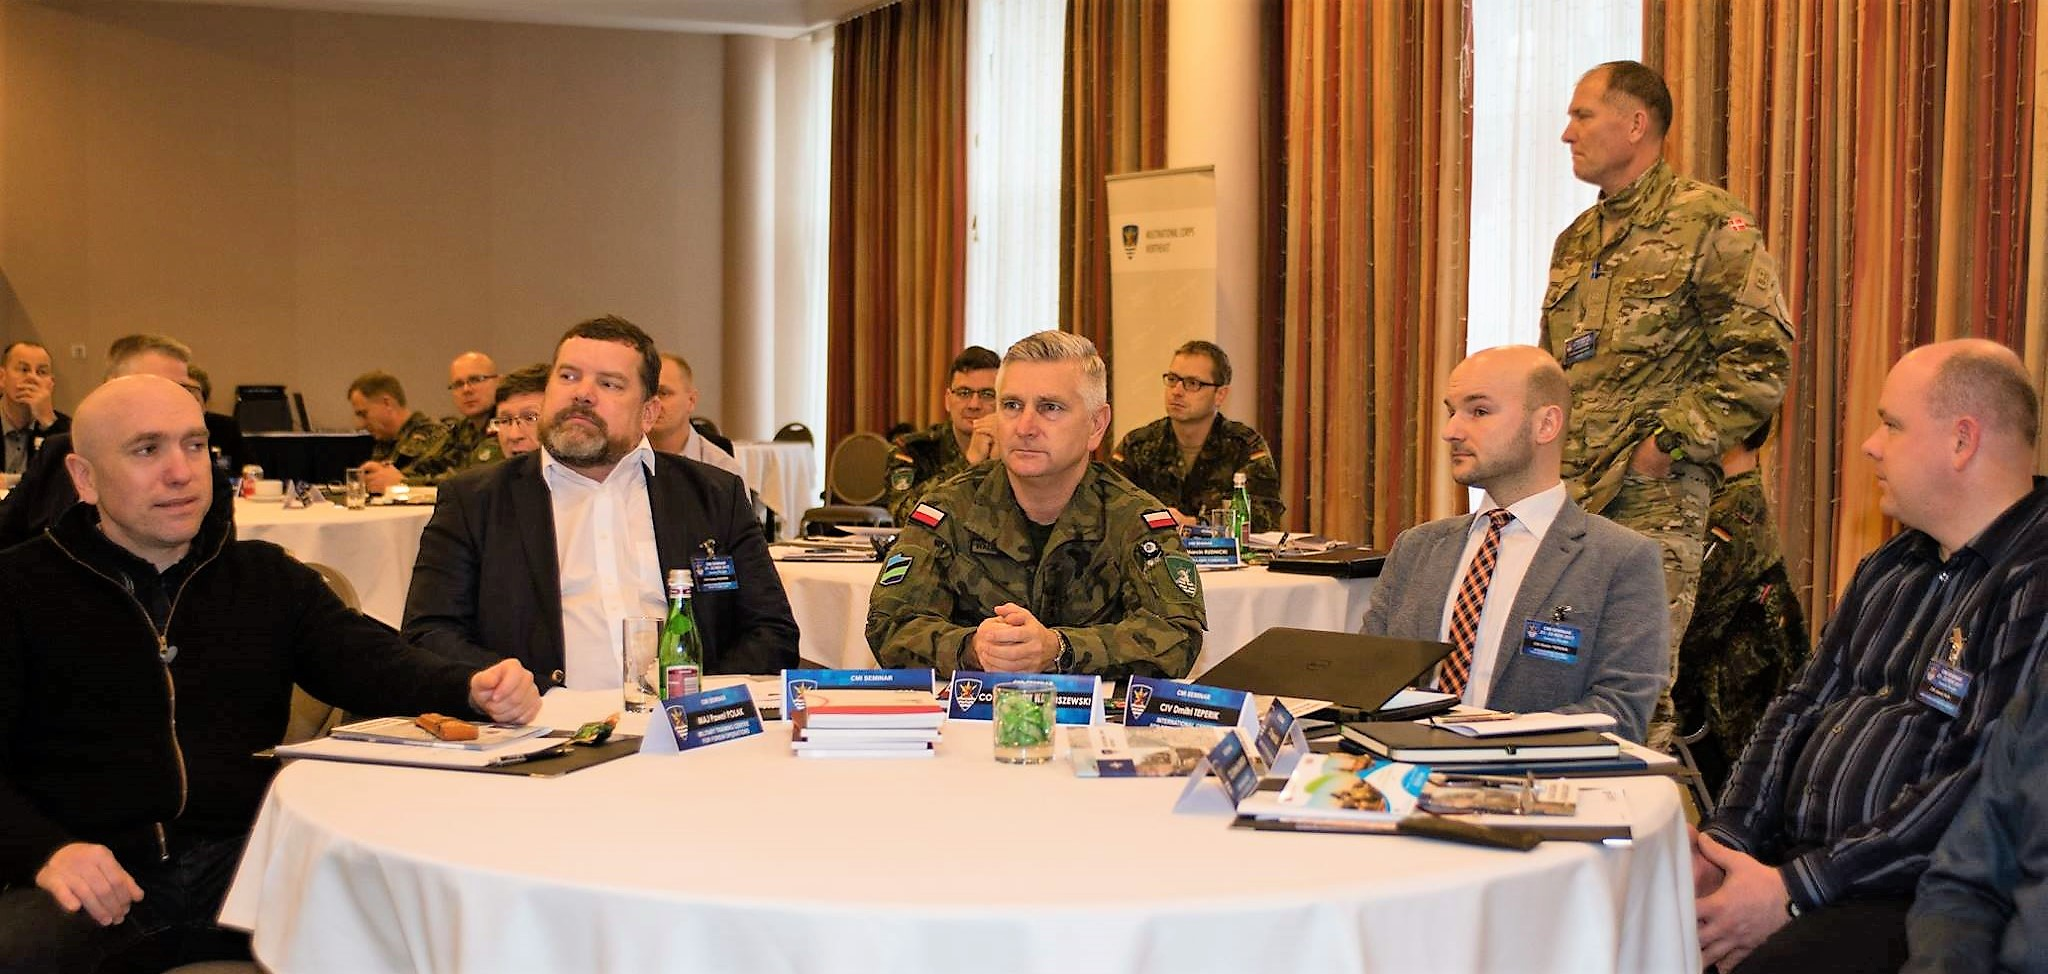 Image for Dmitri Teperik Briefed CIMIC Officers on Russia's Hostile Activities against Estonia